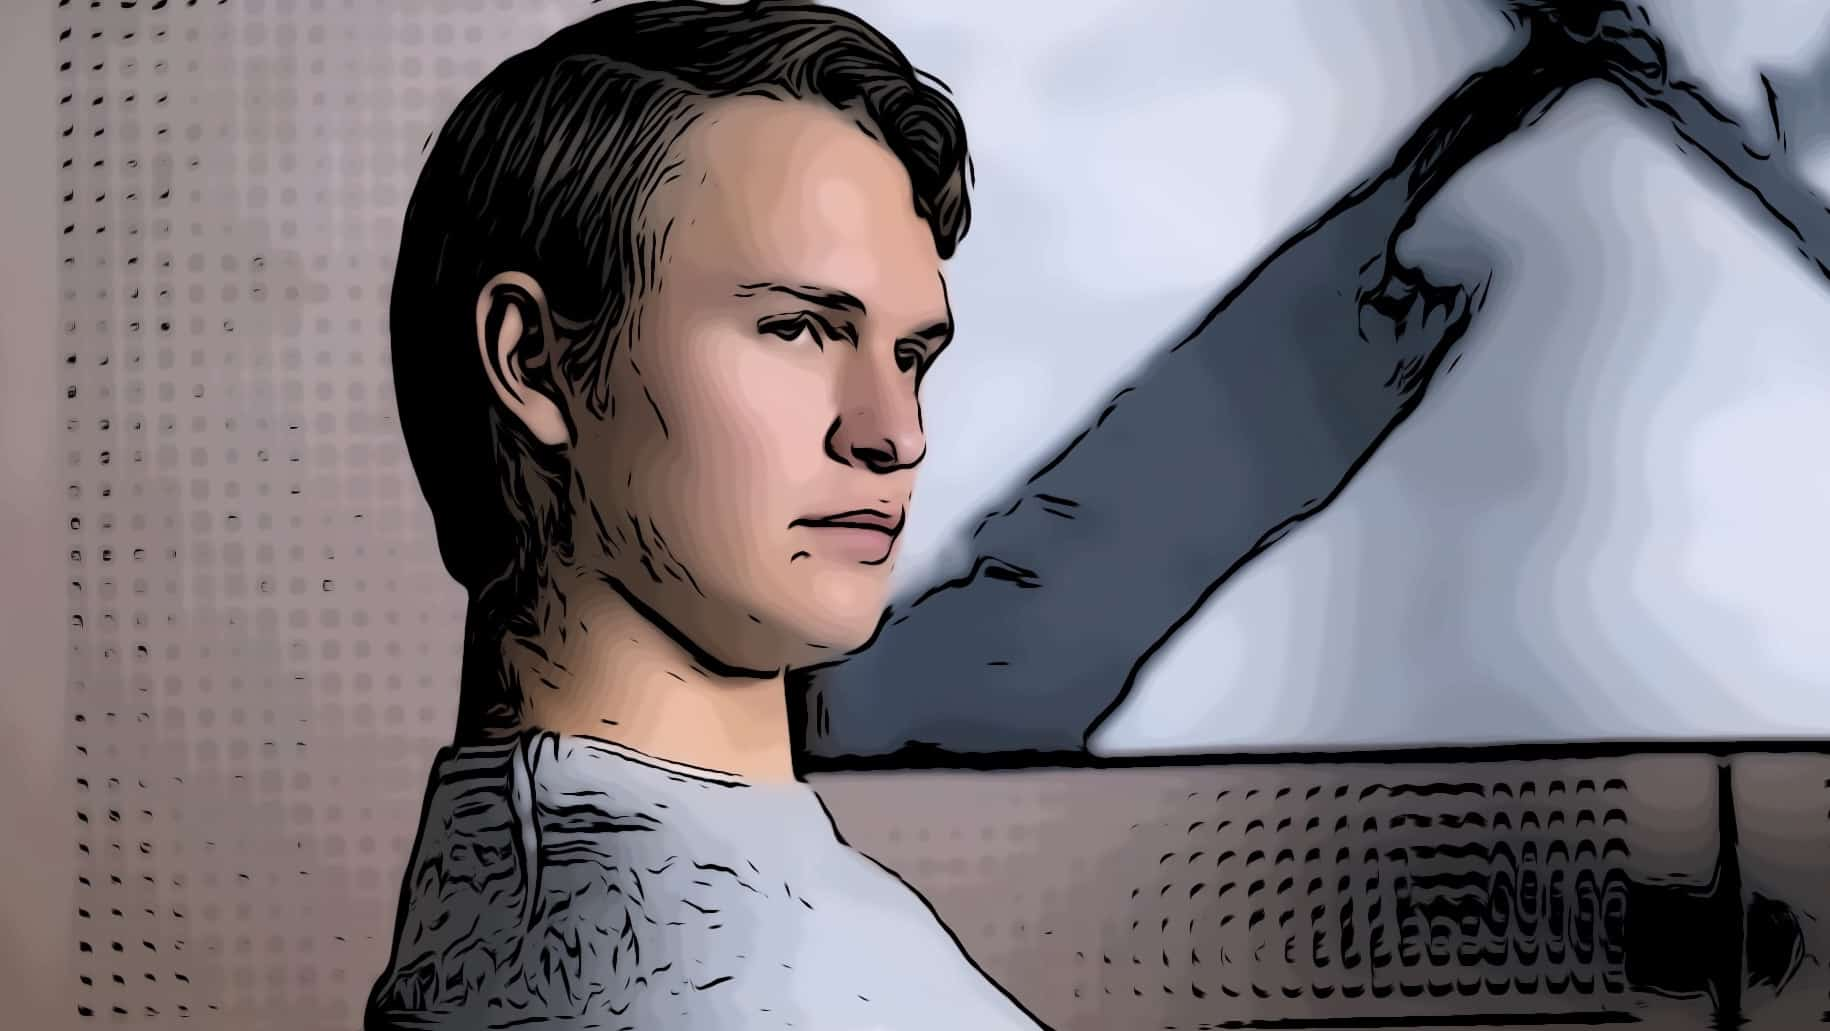 Scene from Jonathan for Ansel Elgort movies post.